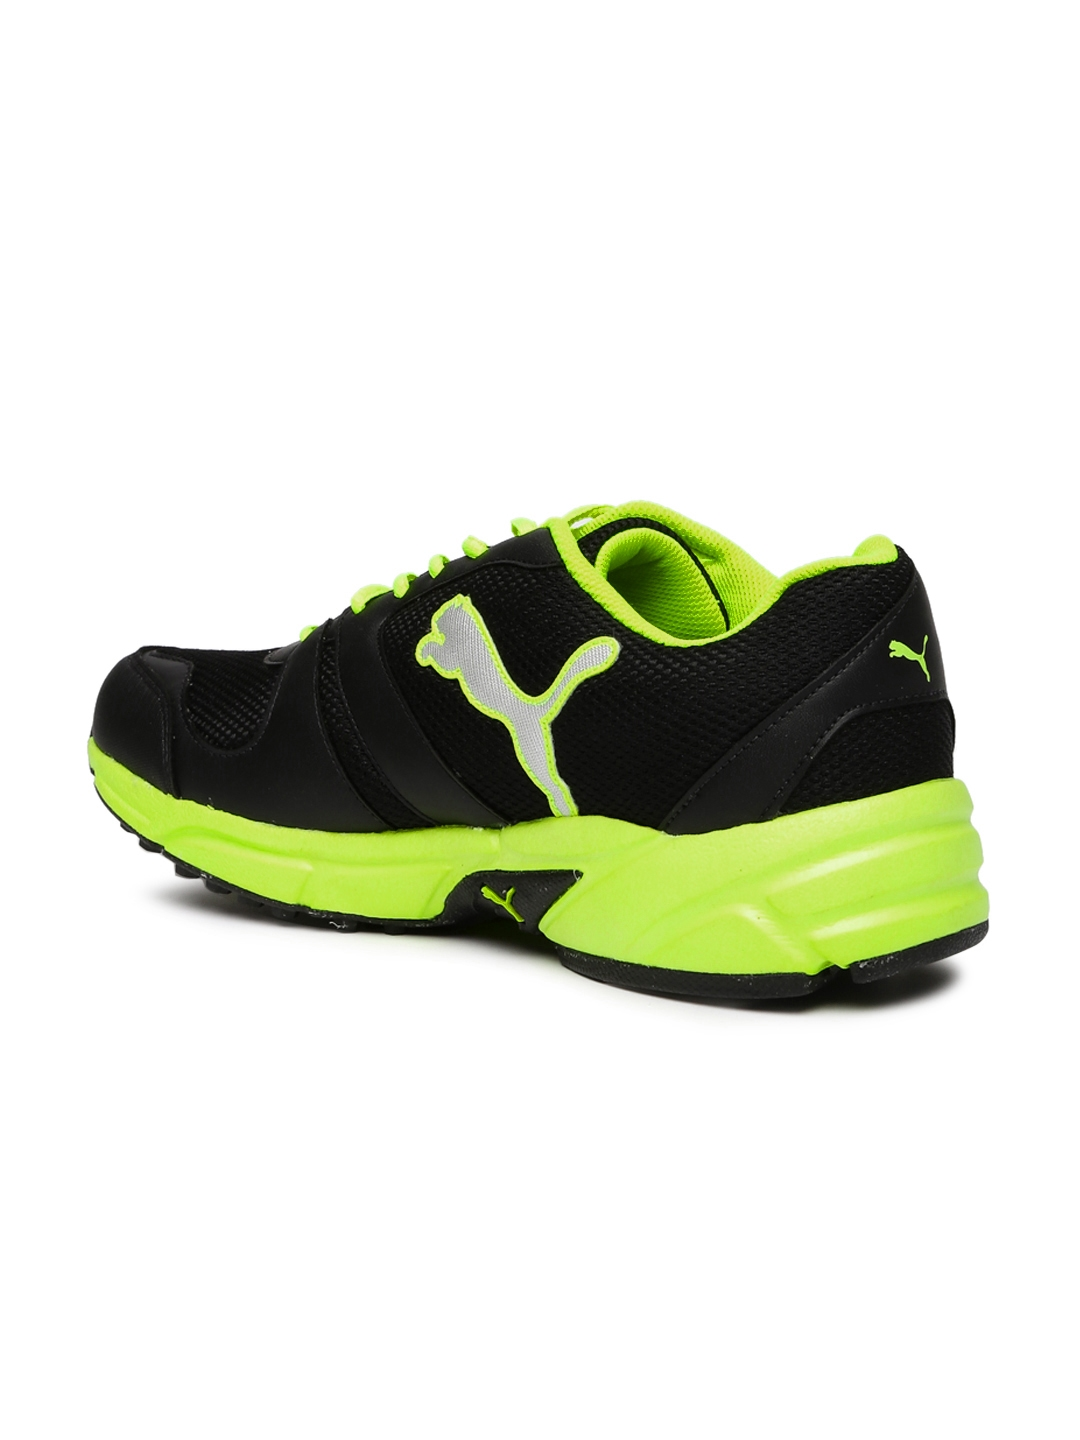 51663e6b2910 Buy Puma Men Black   Fluorescent Green Strike Fashion Running Shoes ...